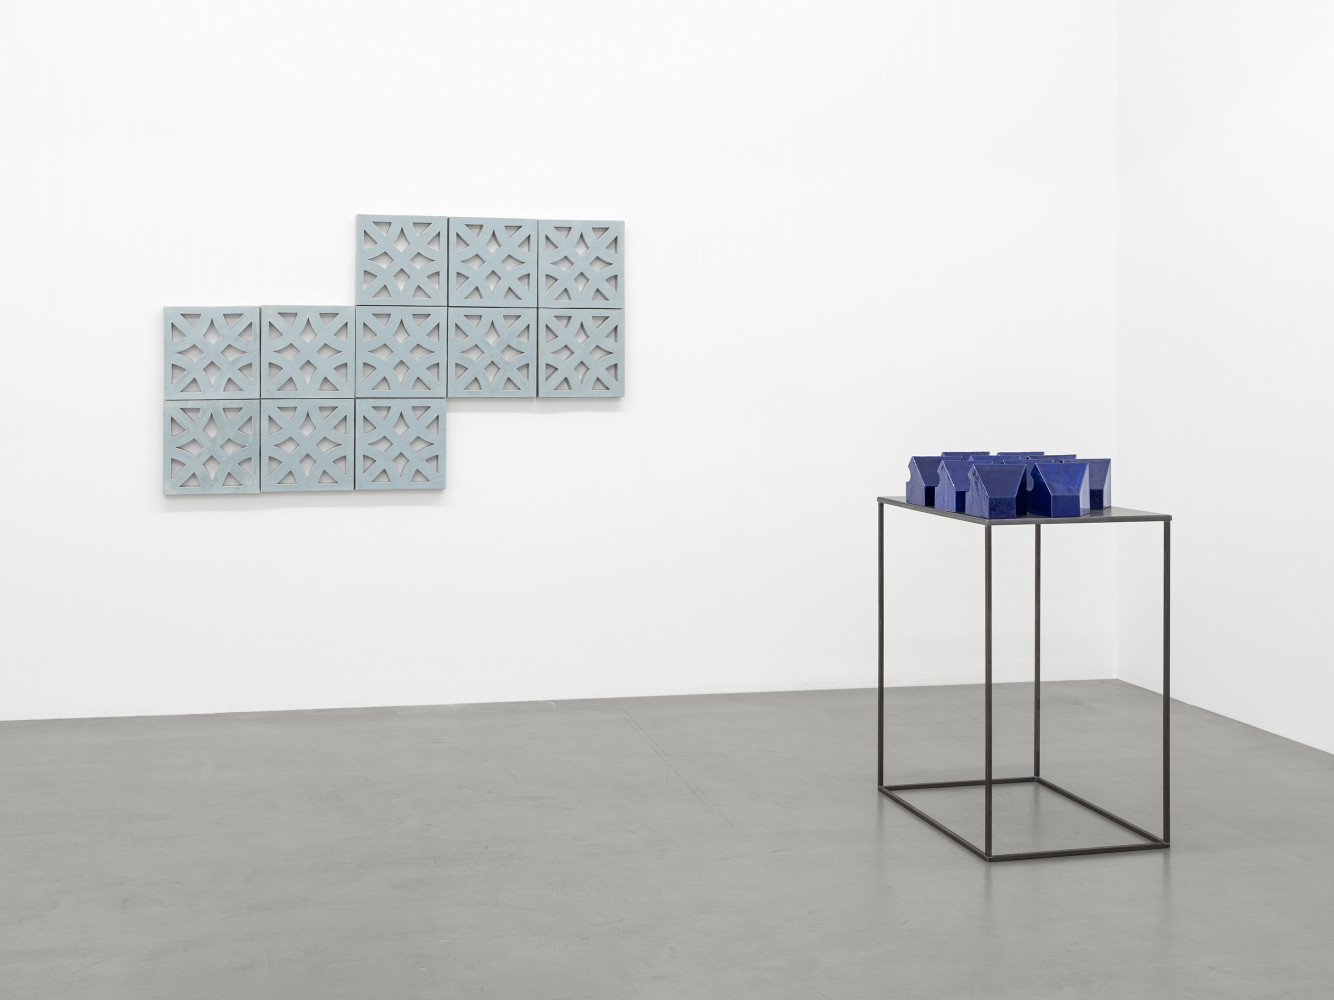 Bettina Pousttchi, Installation view, Buchmann Galerie, 2016